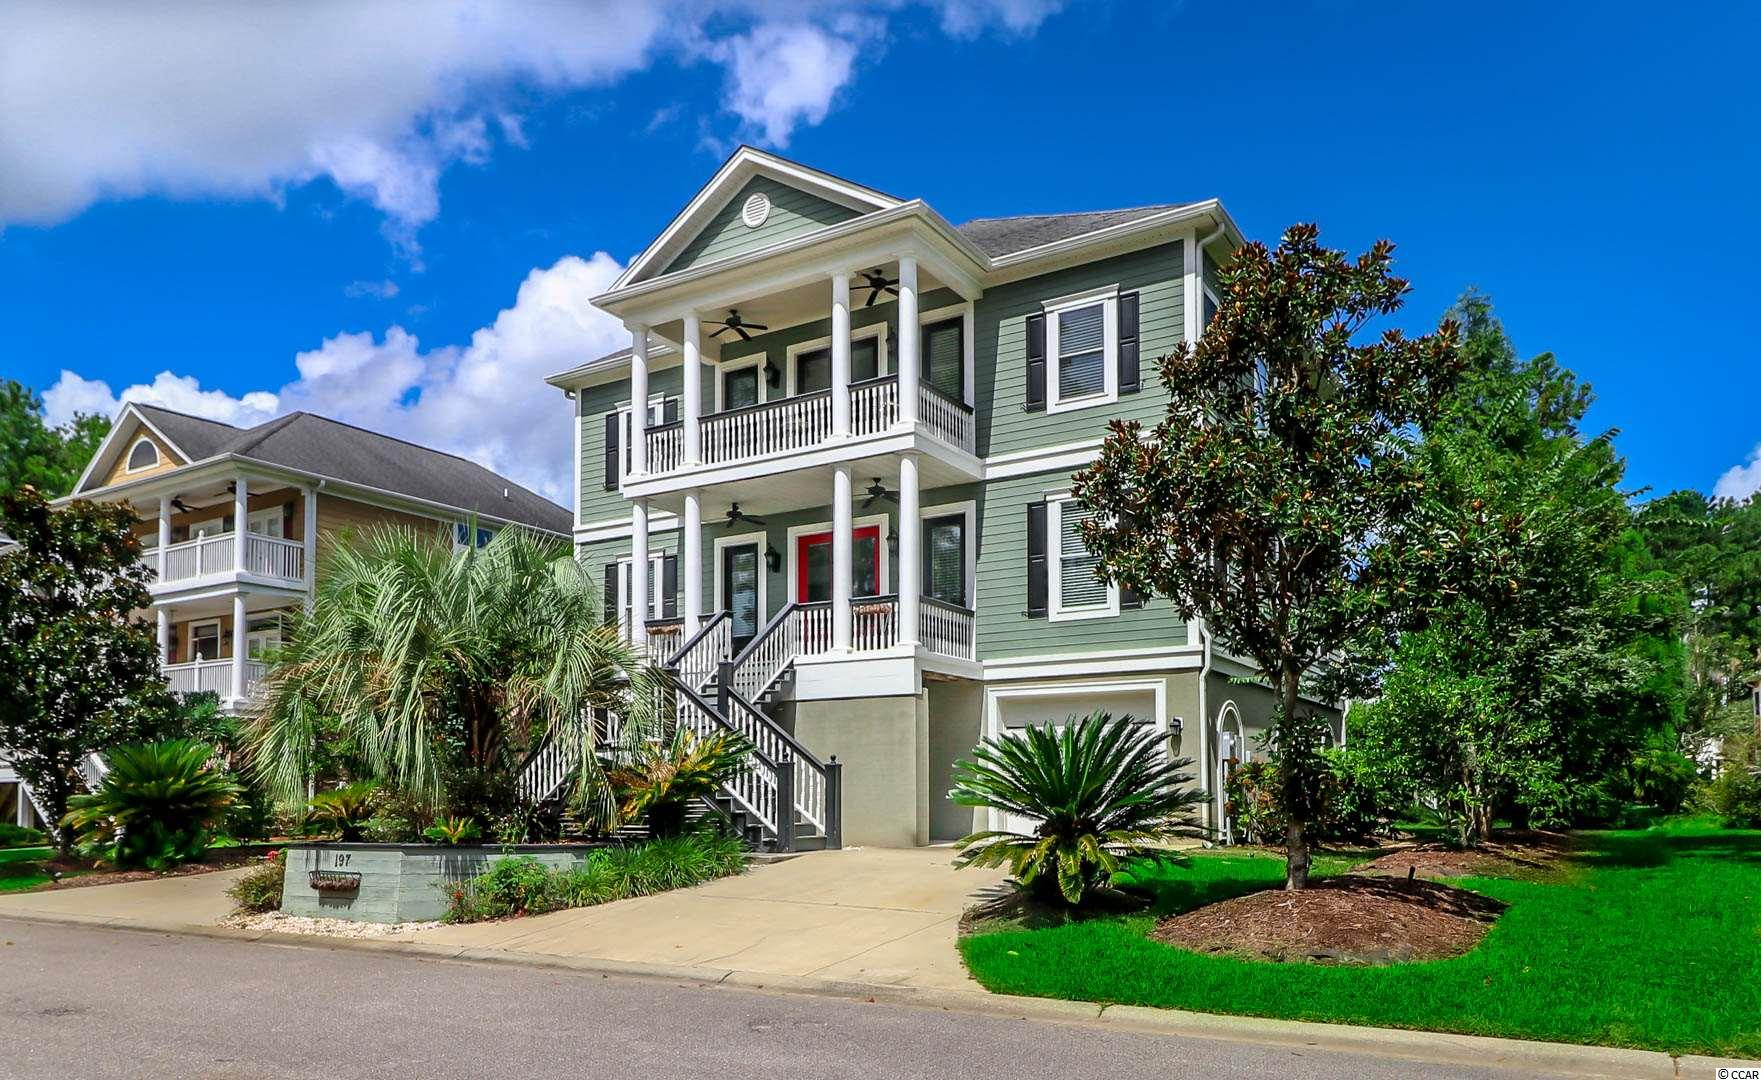 This 4BD/3.5BA Custom Home is Located in the Gated, Intracoastal Waterway Community of Harbor Oaks Marina. Numerous Features Include: Heart of Pine Flooring, Custom Wood Trim & Detailing Throughout, Security System, Central Vacuum, 3 Level Elevator, Gourmet Kitchen with Granite Countertops, Custom Kitchen Cabinets w/Accent Lighting, Butlers Pantry, Walk In Pantry, Work Island, Under Cabinet Lighting, Breakfast Nook & Breakfast Bar. Open Floorplan Concept w/Gas Fireplace, 10' Ceilings (1st & 2nd Floor, 9' Ceilings on 3rd), Formal Dining Room with Double Tray Ceiling w/Accent Lighting. Rear Screened Porch w/Tiled Flooring Overlooking Tranquil Pond. Outstanding Master Suite w/Huge Walk In Closet, Double Tray Ceiling w/Accent Lighting, His & Her Sinks, 6' Jetted Tub, Travertine Tile, Ornate Tiled Walk In Shower w/Duel Shower Heads, 3 Car Garage, Duel Zone HVAC, Water Filtration System. Upgrades are too Numerous to Mention!! Community Includes: Designer Clubhouse (Bathrooms, Kitchen, Screened In Porch, Fireplace, Lounge) & Gorgeous Outdoor Pool! All Overlooking the Tranquil Intracoastal Waterway! The Private Marina Offers: Electric & Water Hookups!!! All of this located within minutes of Beaches, Shopping, Restaurants, Entertainment & Award Winning Schools!